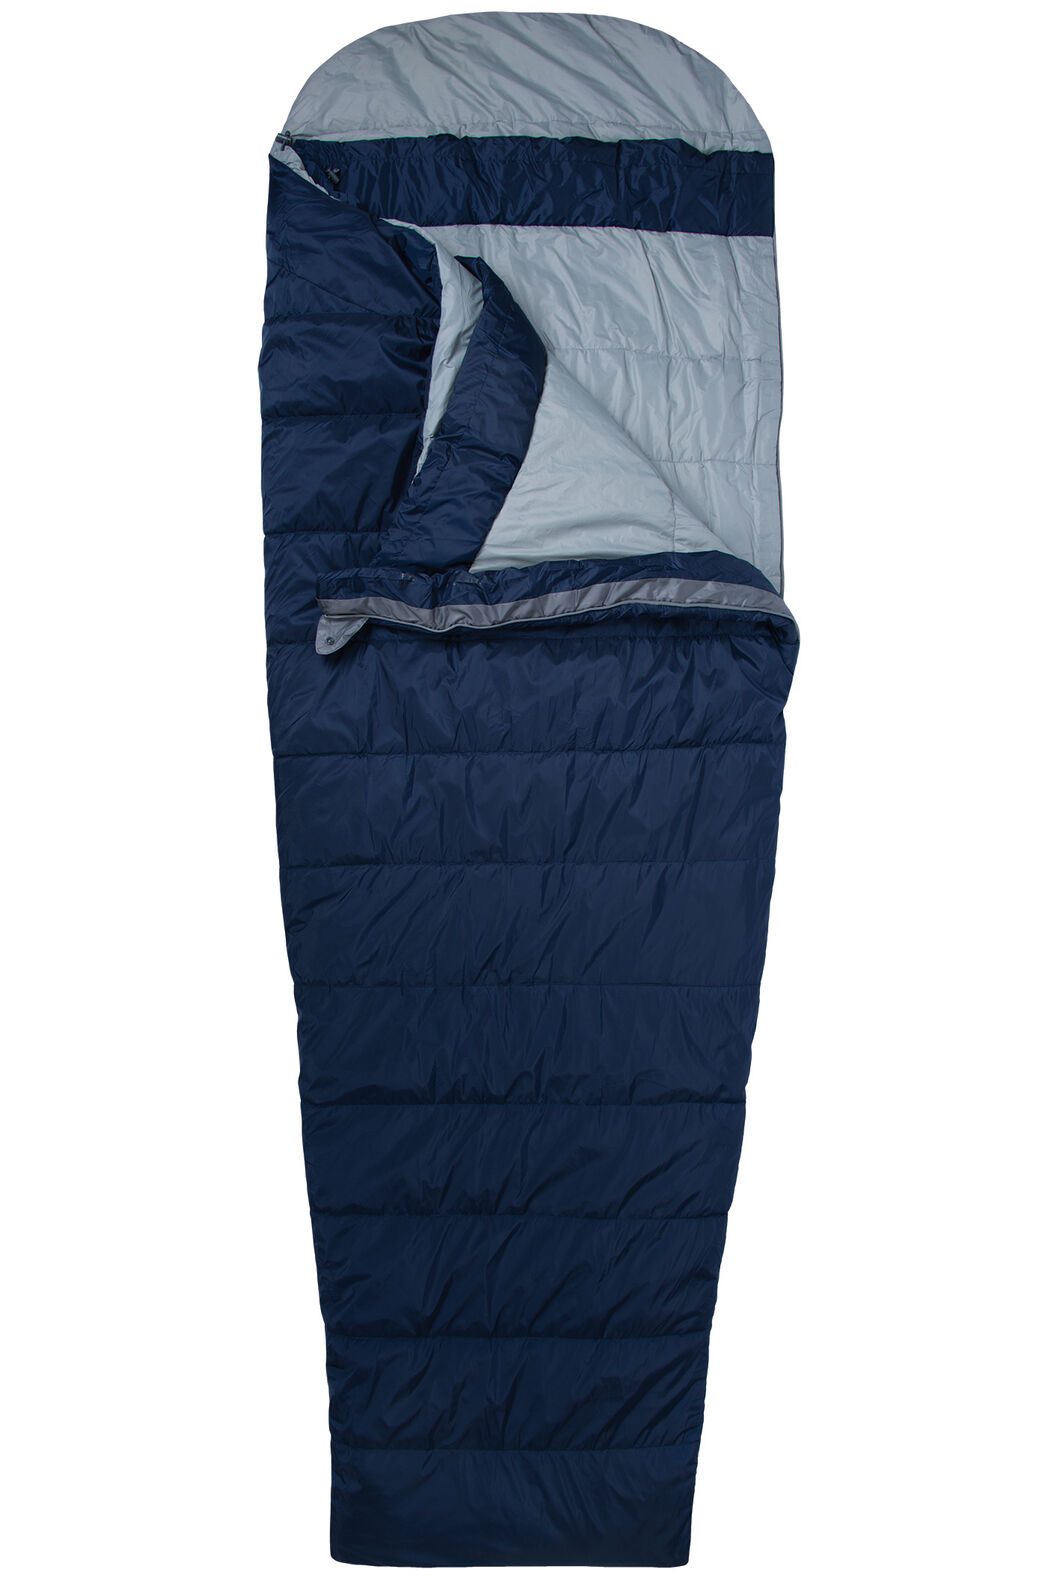 Macpac Roam Synthetic 350 Sleeping Bag - Extra Large, Black Iris, hi-res